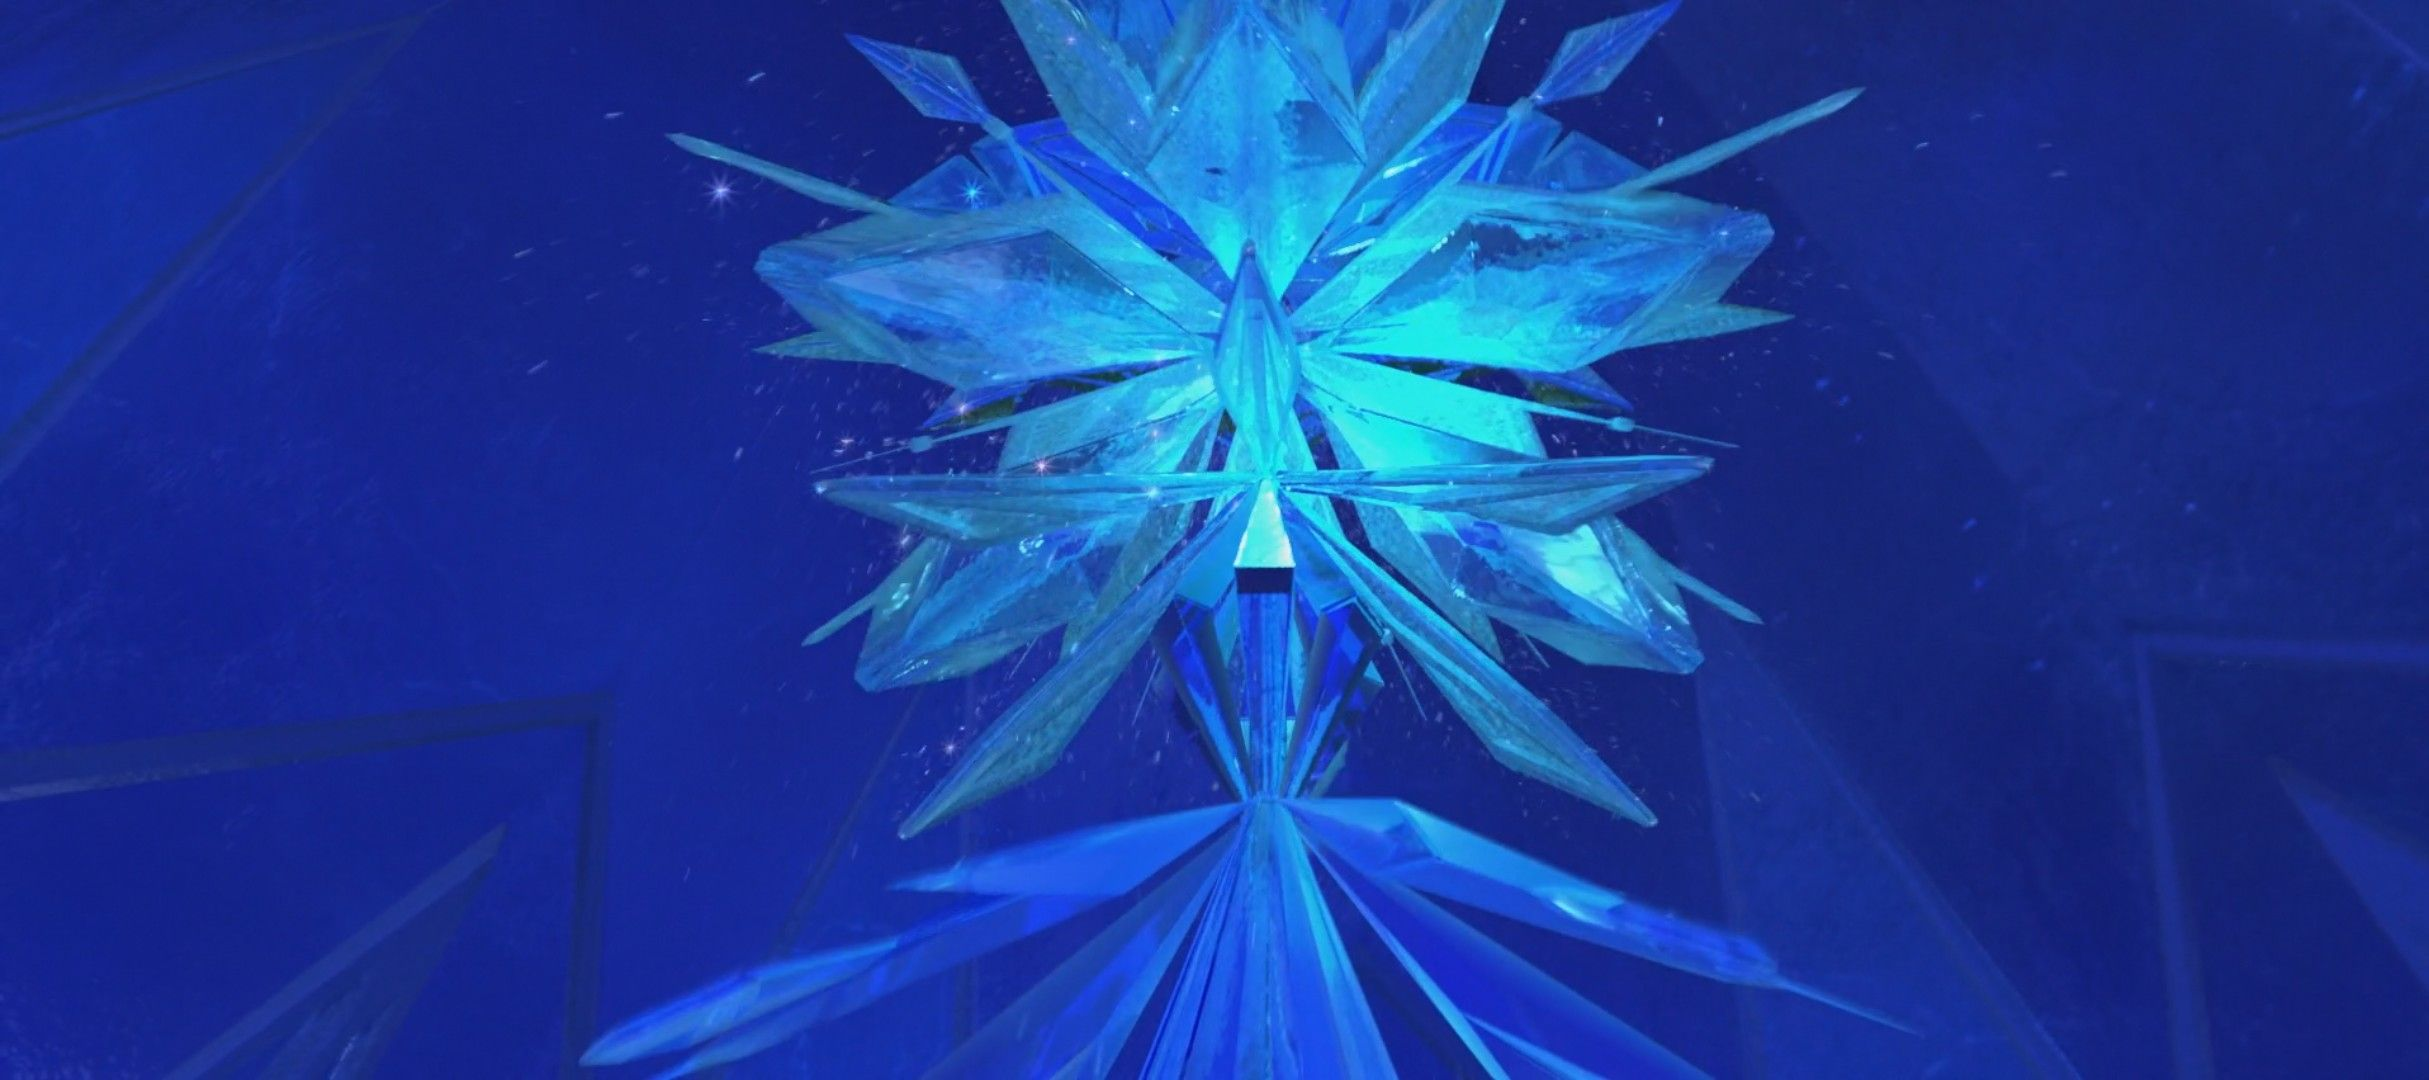 Elsa anna olaf kristoff hans frozen disney frozen fanart the first time my brother and i watched frozen this scene me no me she cant build a chandelier me because chandeliers always arubaitofo Choice Image